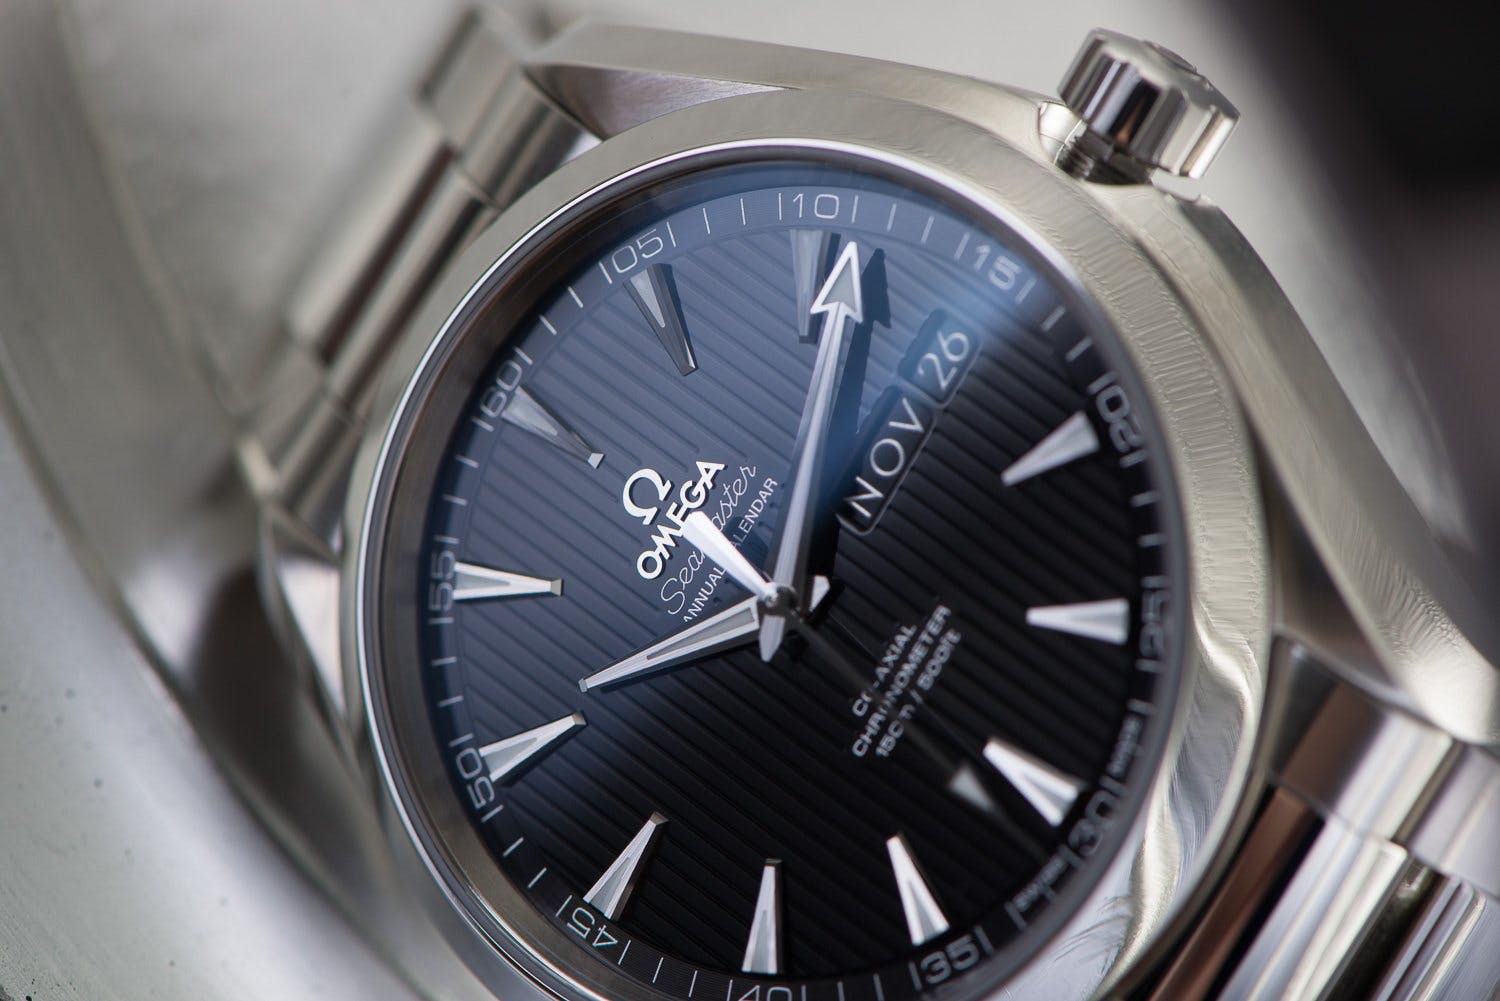 Omega watch with a co-axial escapement